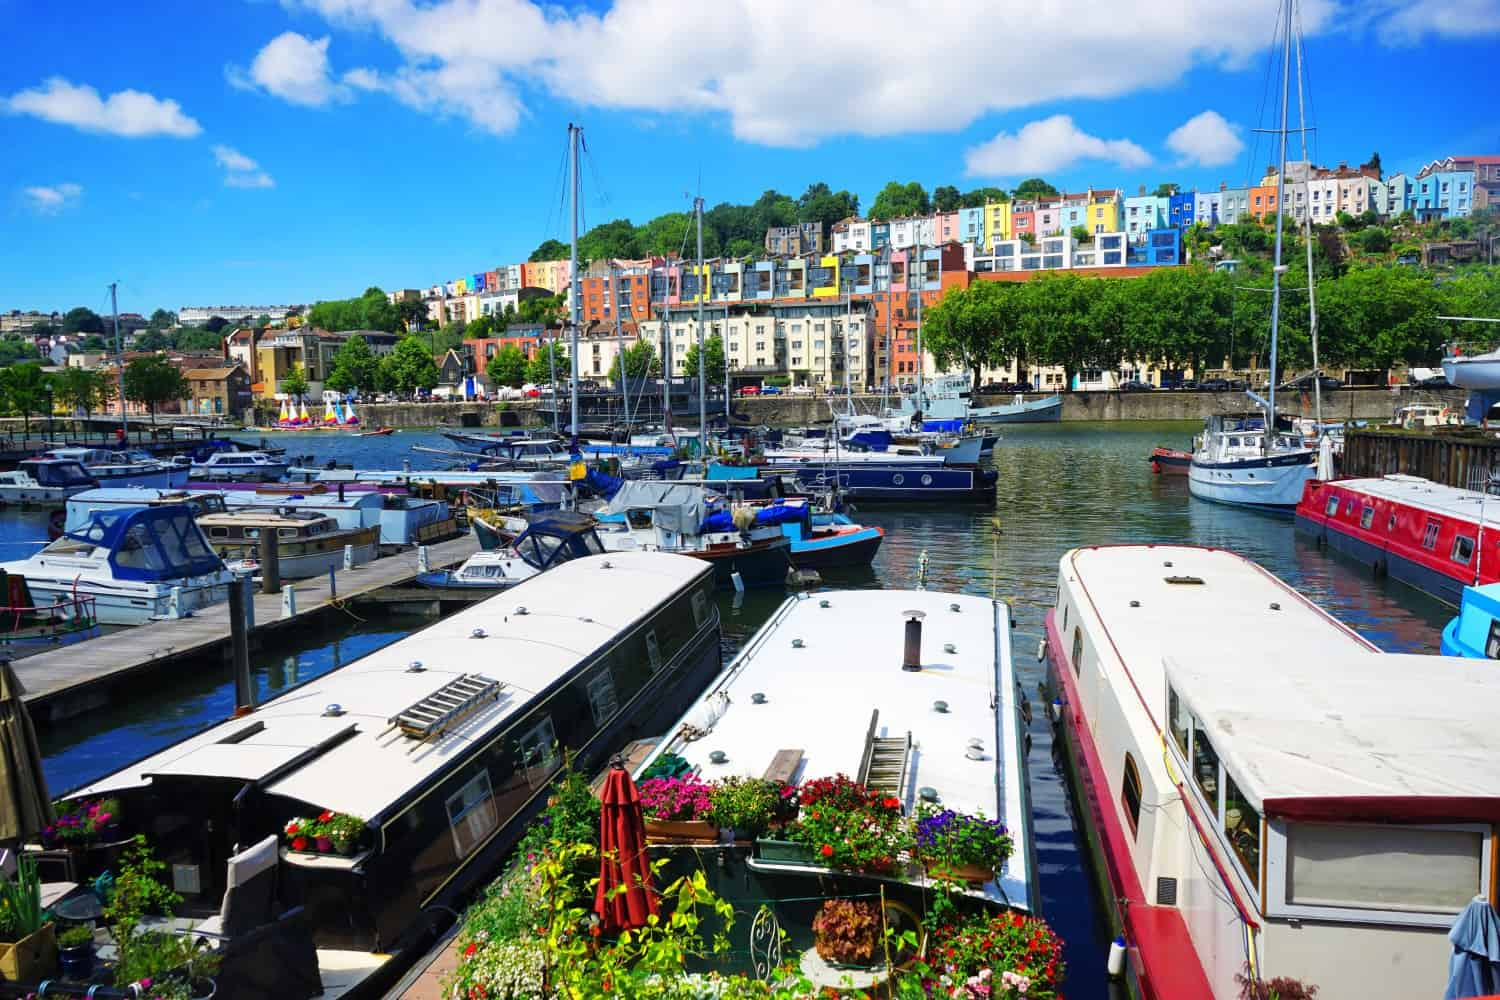 Colourful Bristol on a sunny day